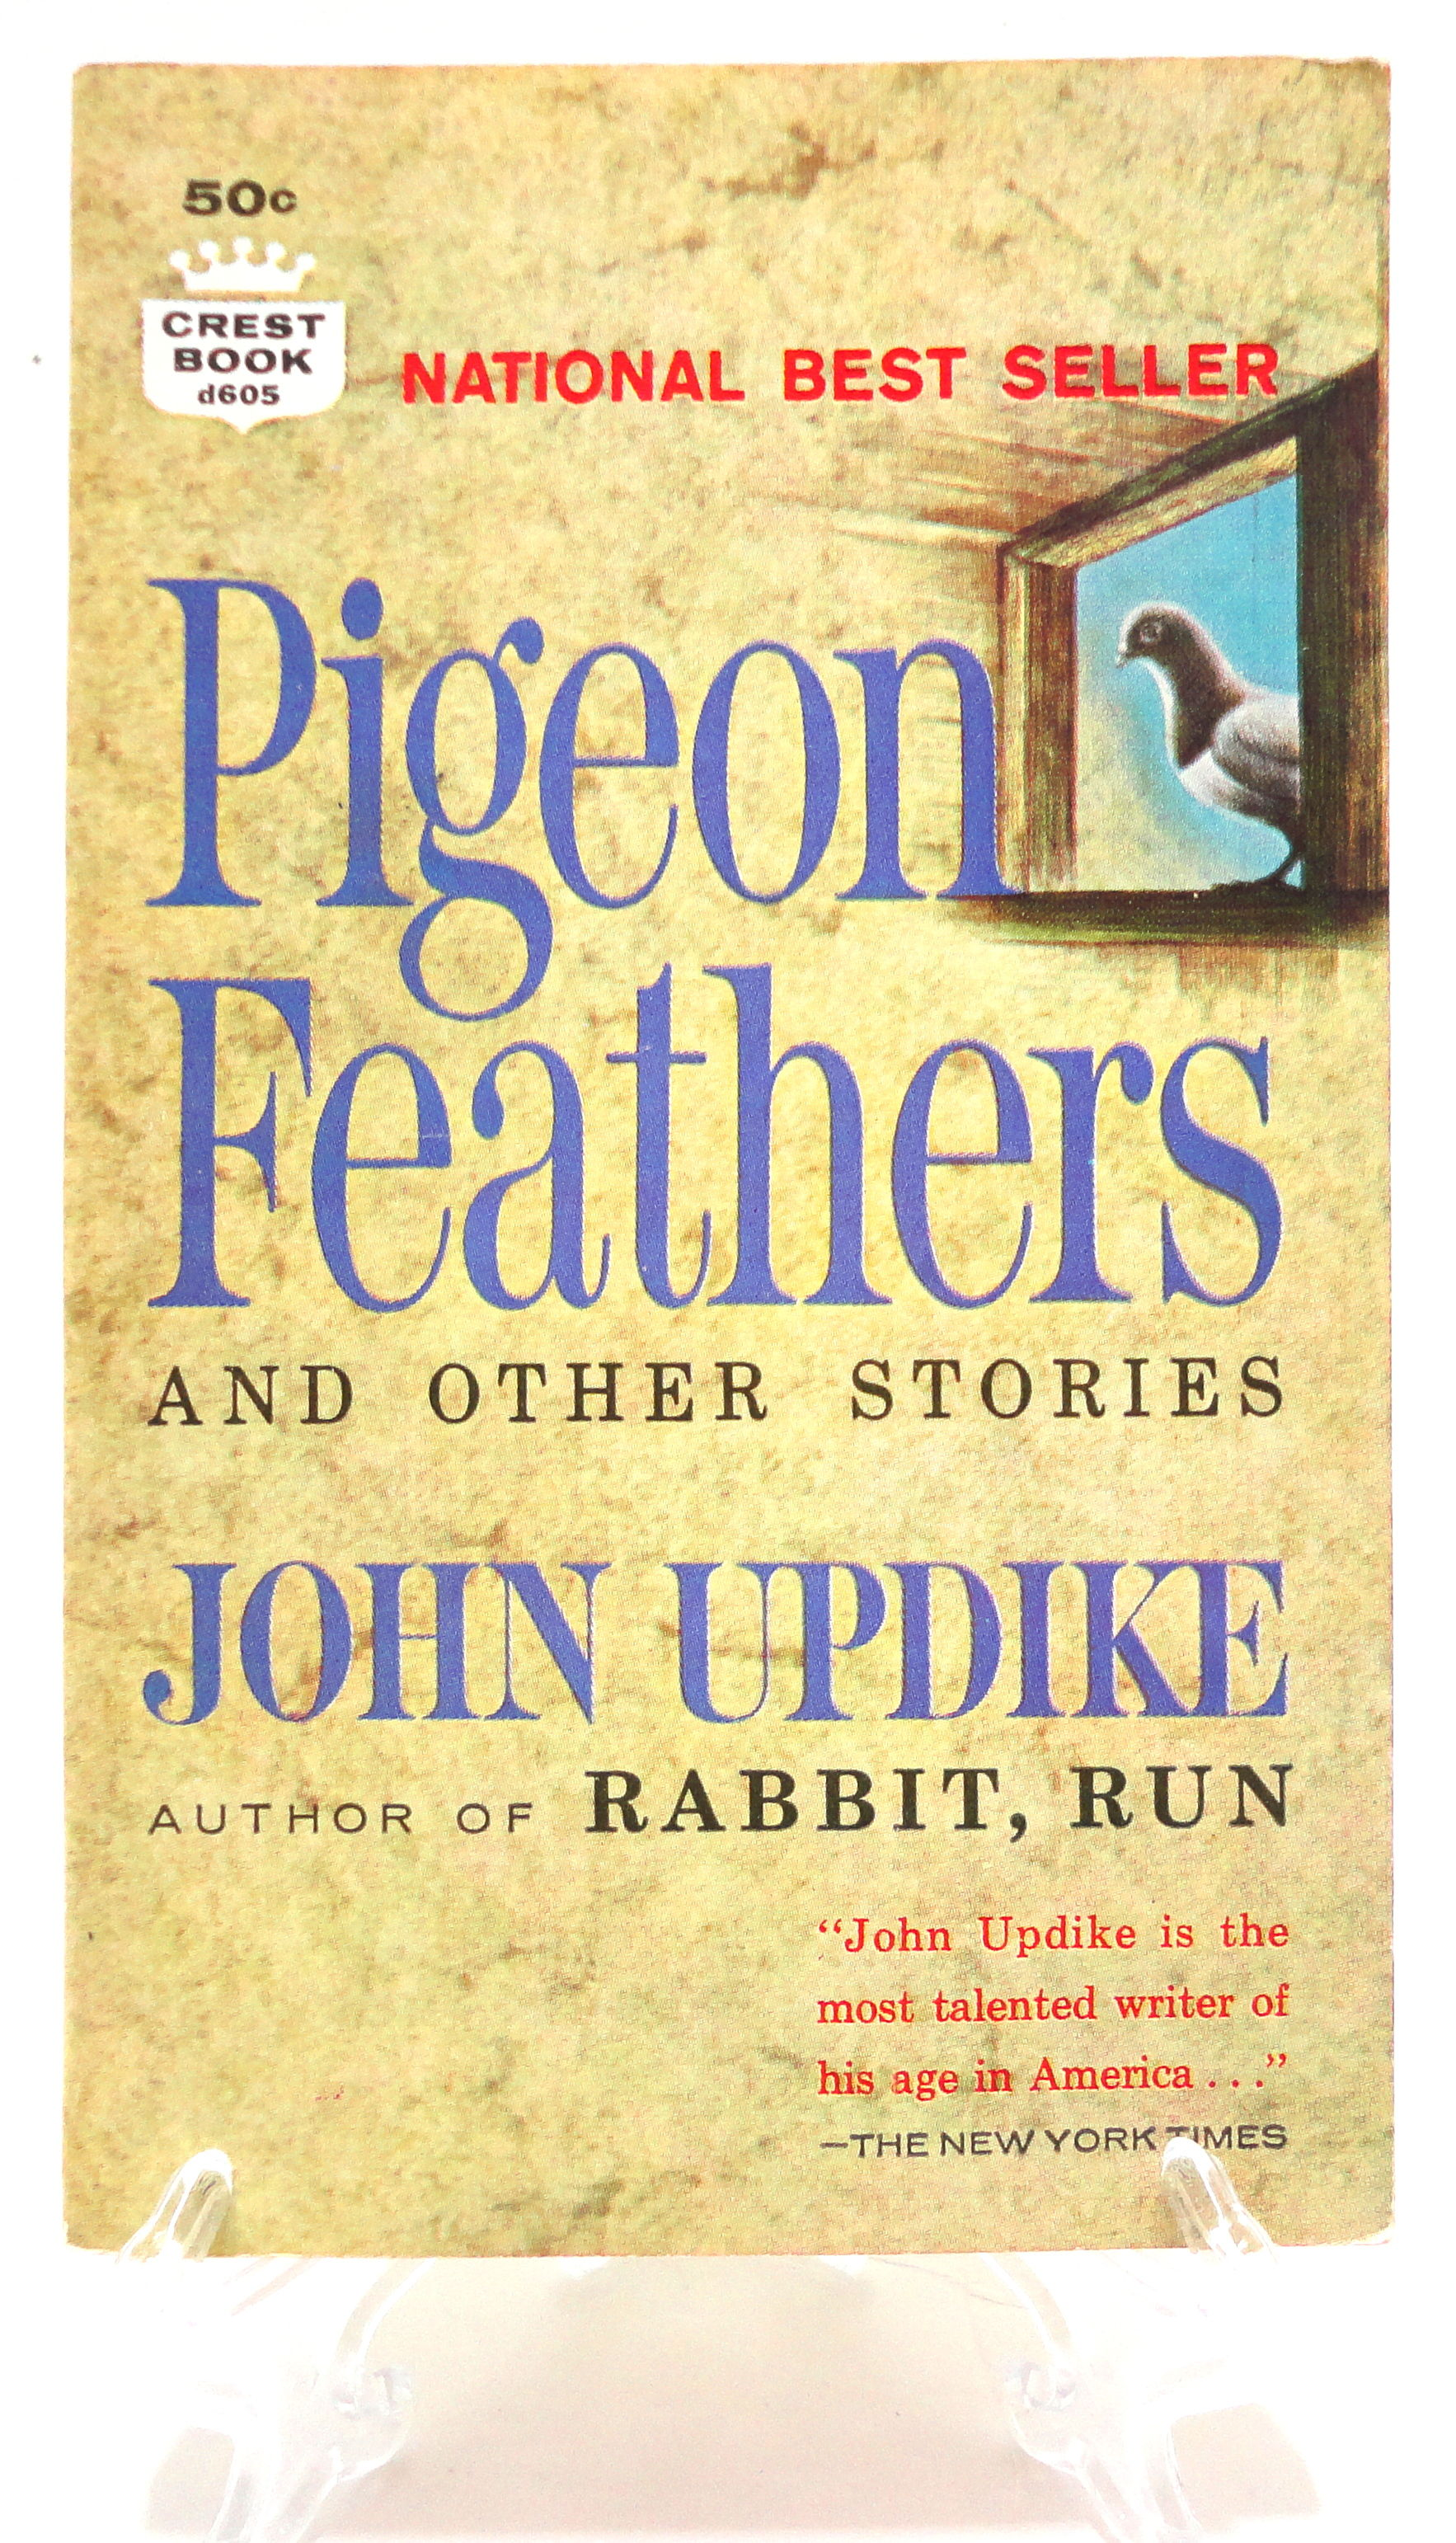 pigeon feathers by john updike Download john updike reading from pigeon feathers by john updike on calliope author readings.